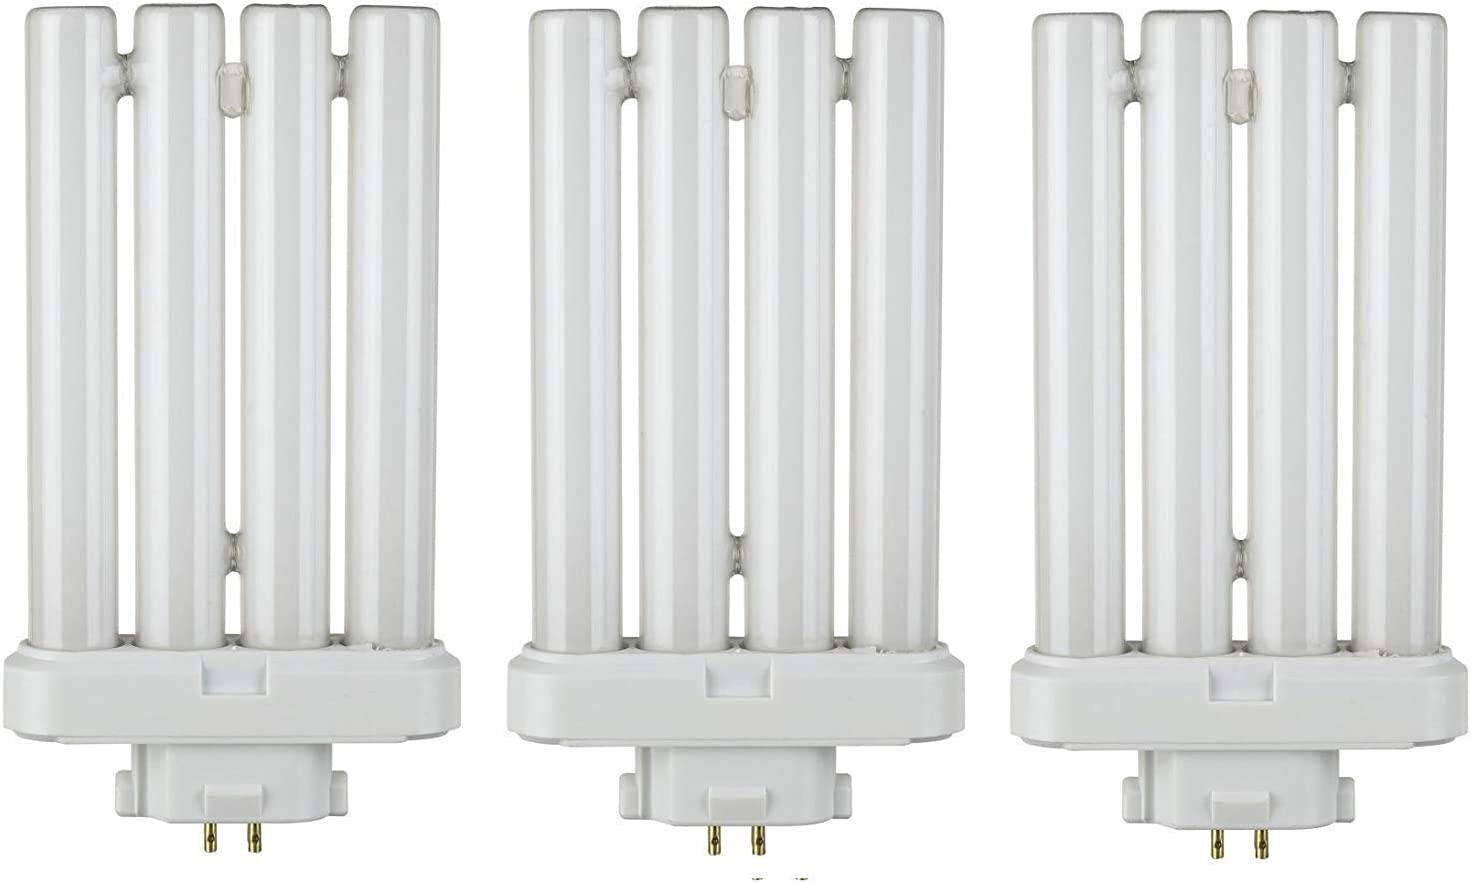 Ciata Lighting Fml27 65 27 Quad Tube Compact Fluorescent Light Bulb 3 Pack Amazon Com